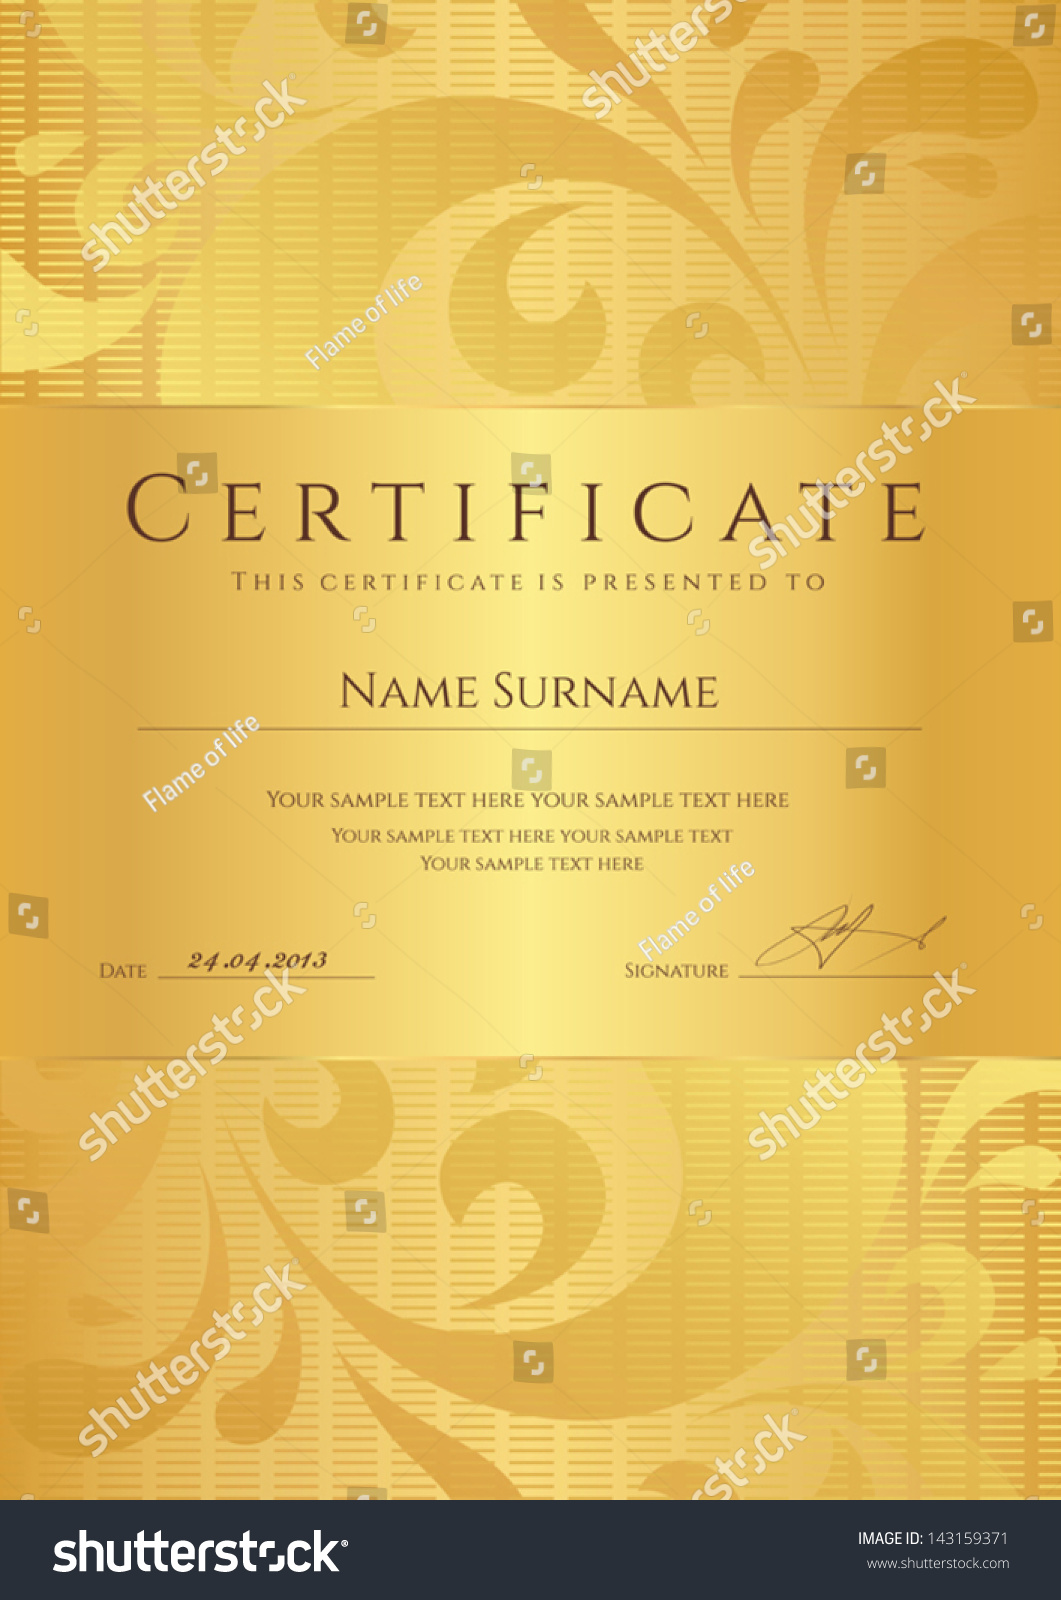 sample certificate of completion template